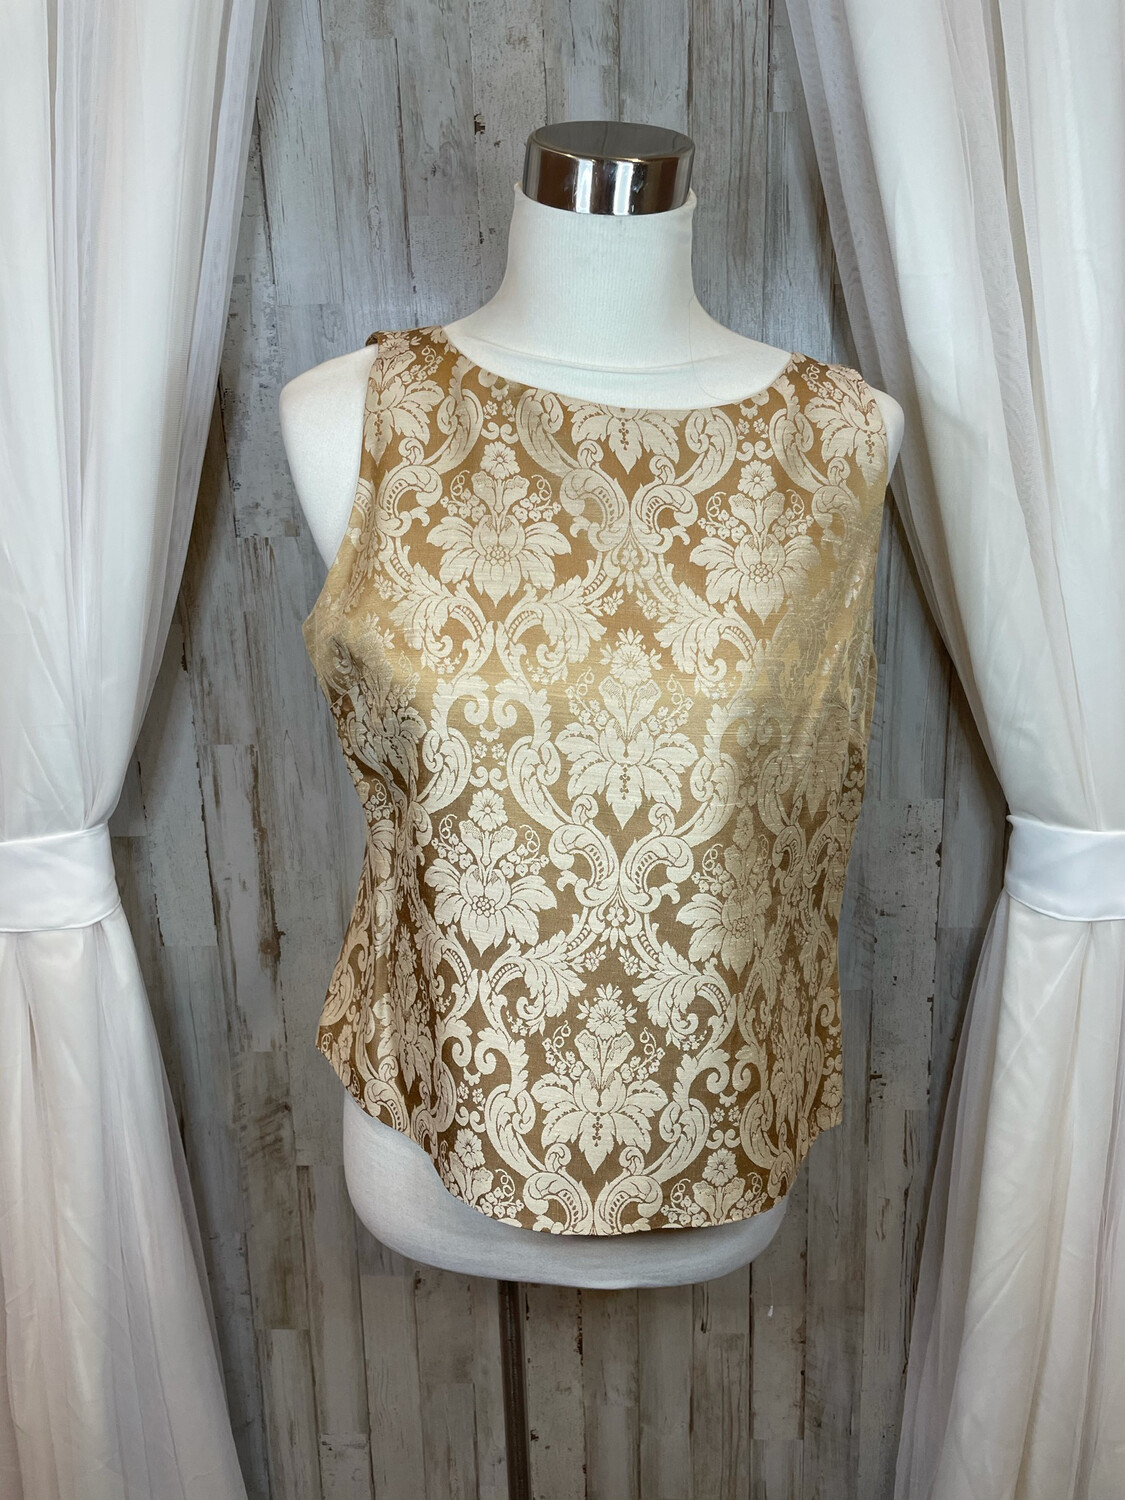 Joesphine Chaus Gold Demask Top - Size 12P